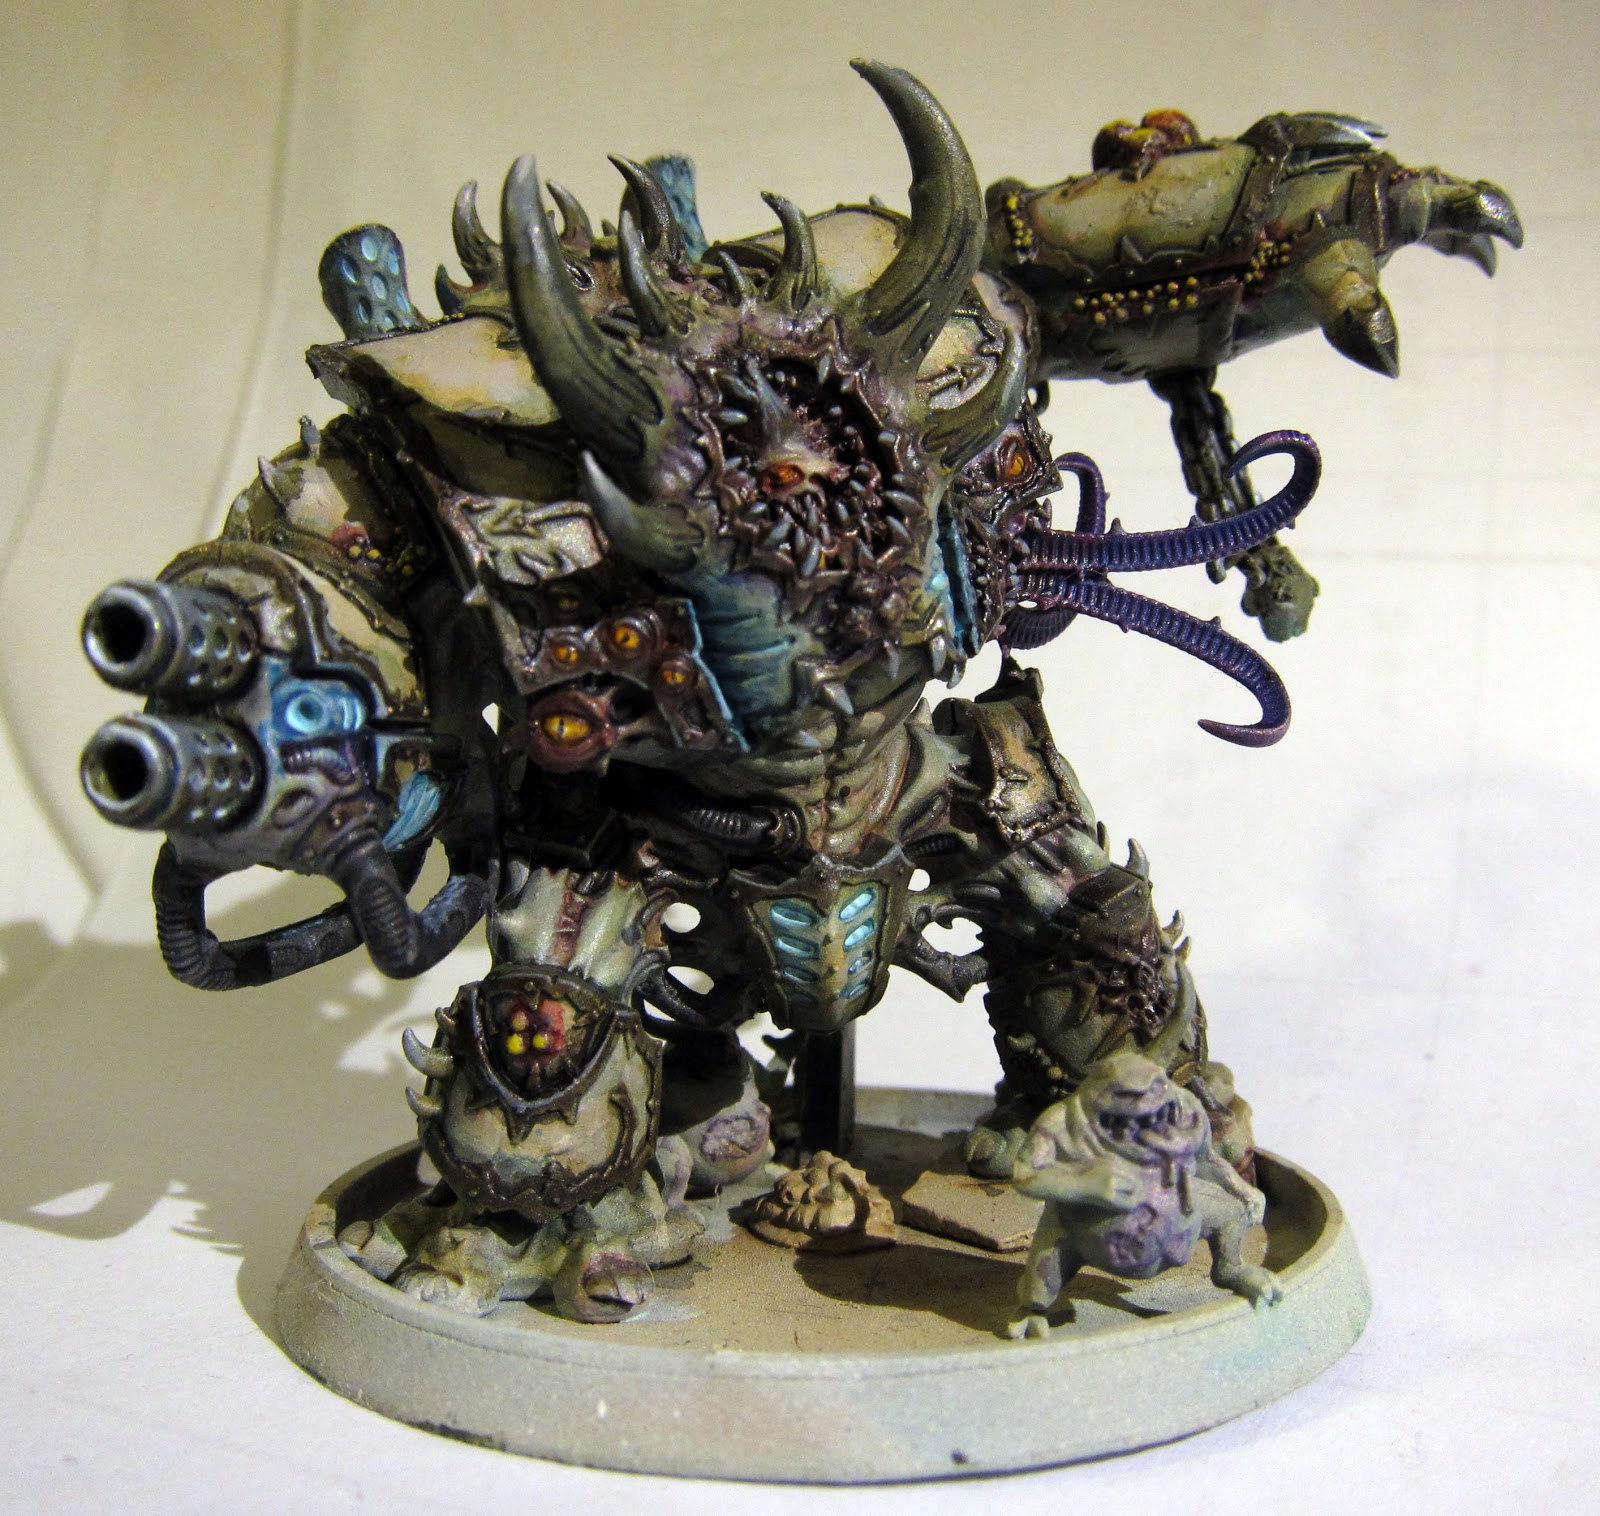 Plebicidal: Up to my neck in Nurgle!